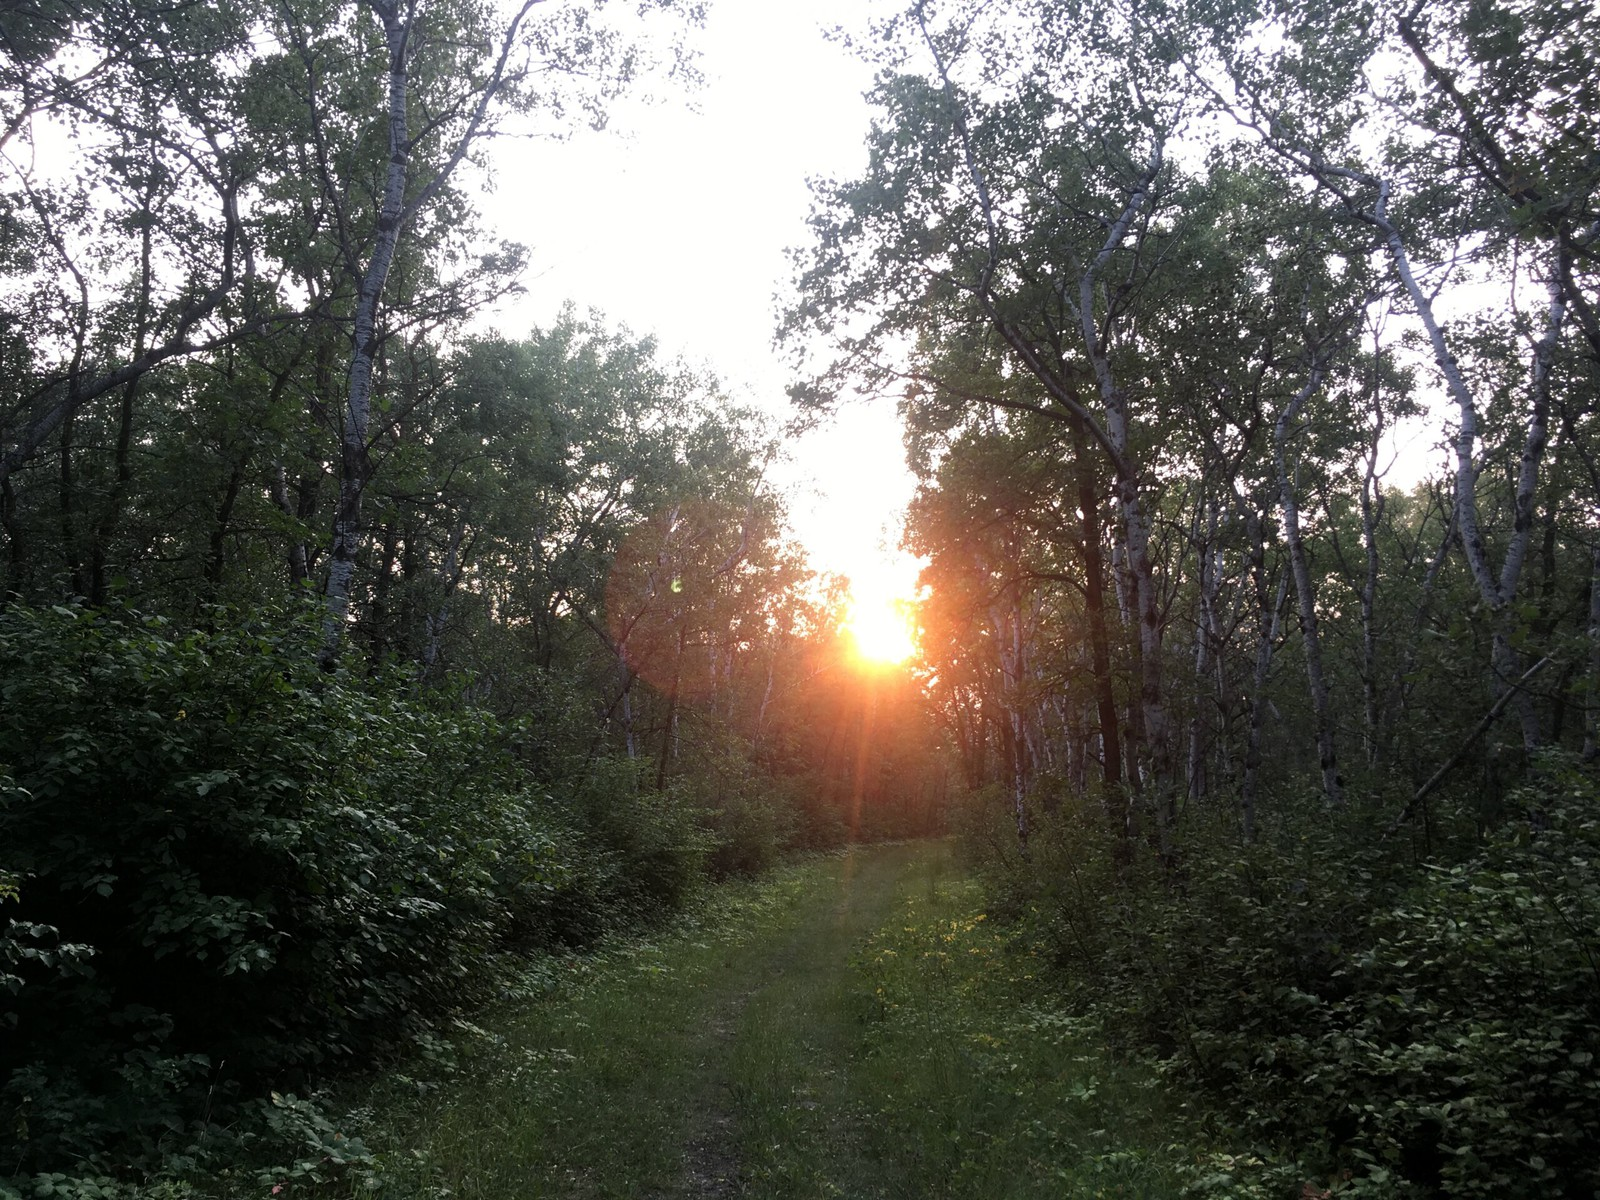 A trail in the forests, with sun beaking through the trees.